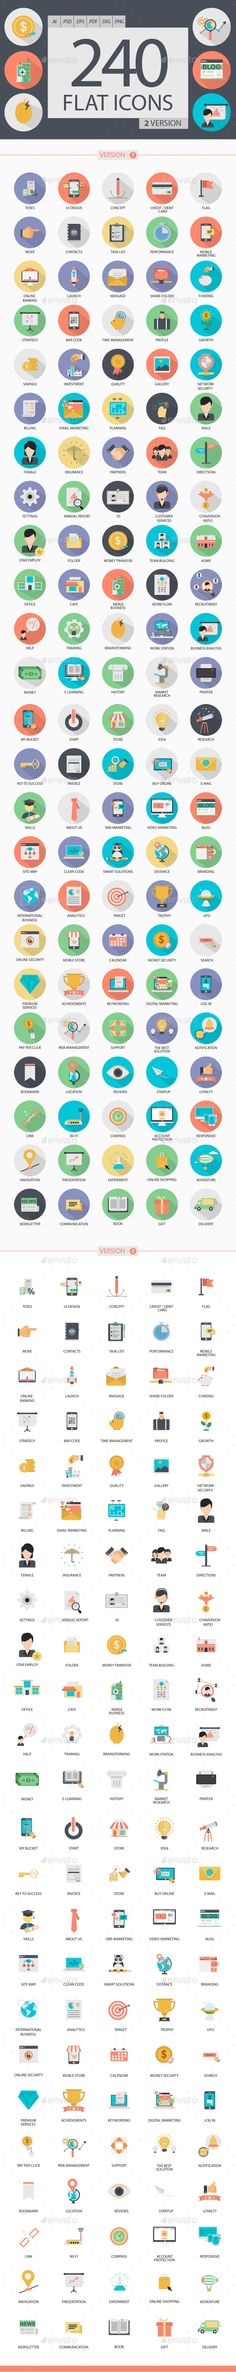 240 Flat Icons Design Vector - Business Icons Design Template PSD, Vector EPS, AI Illustrator. Download here: https://graphicriver.net/item/240-flat-icons/16976541?s_rank=289&ref=yinkira